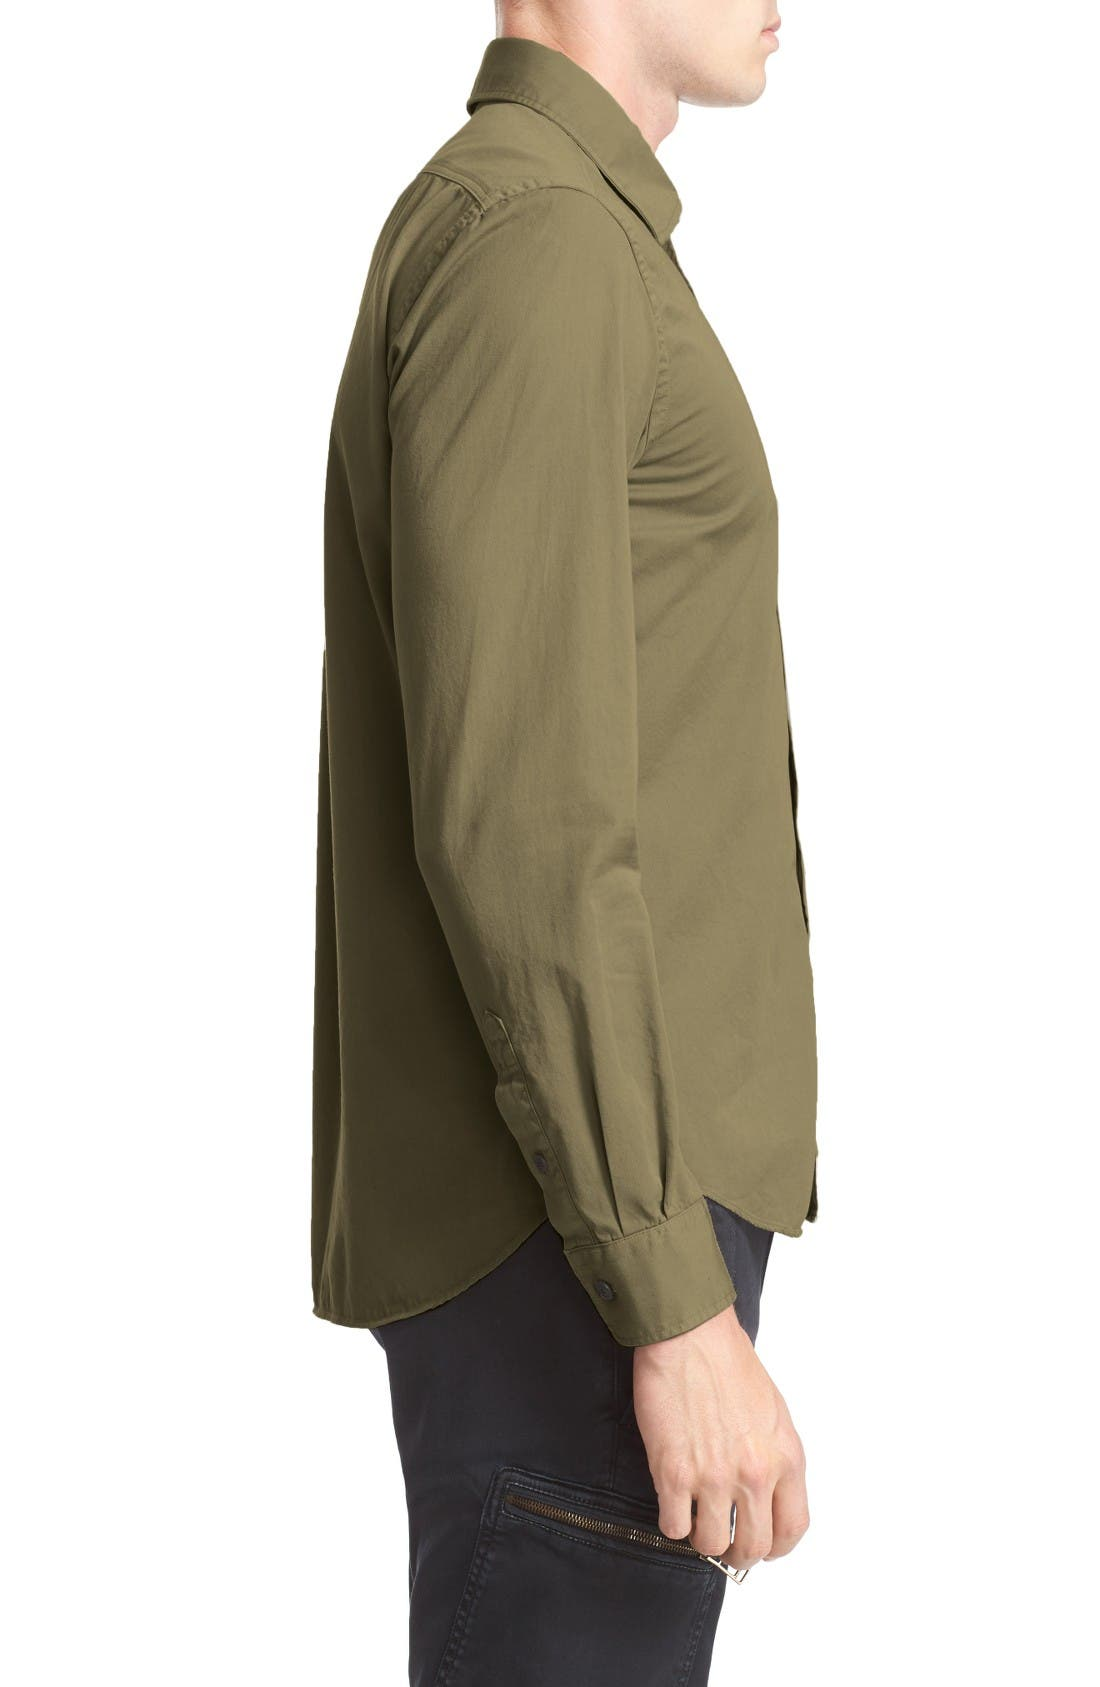 Steadway Woven Shirt,                             Alternate thumbnail 3, color,                             Military Green